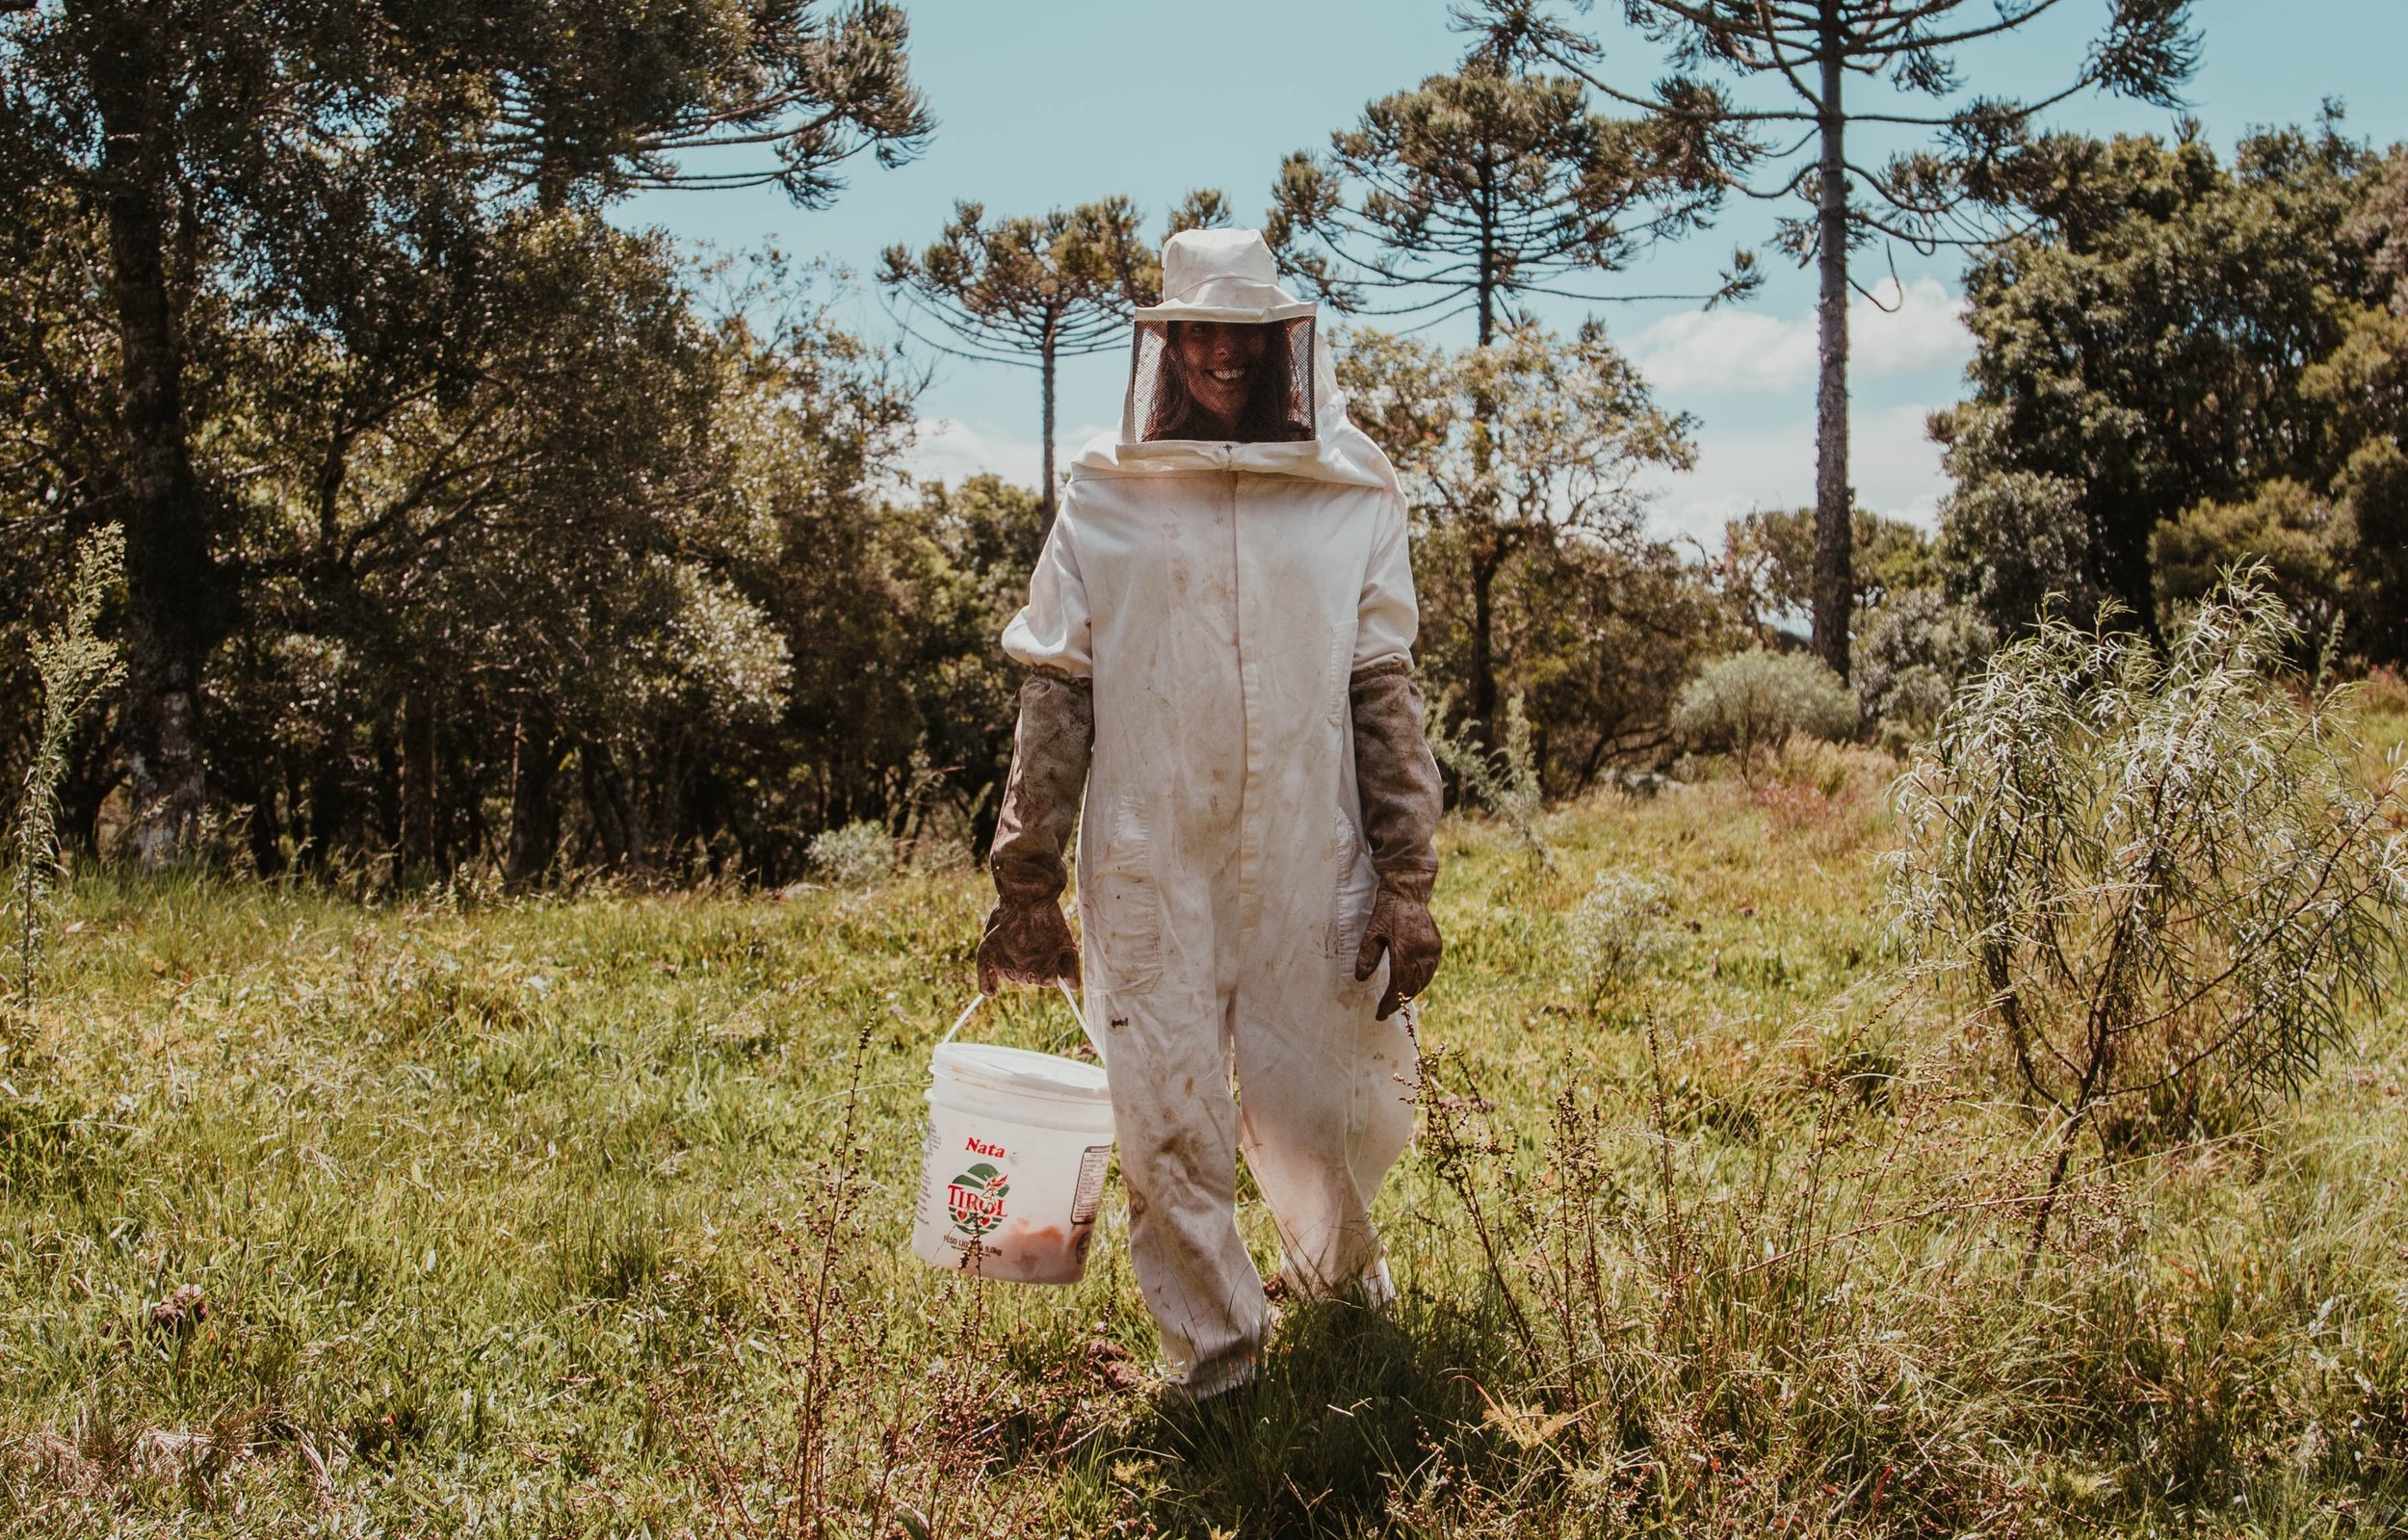 How can we save the bees? -